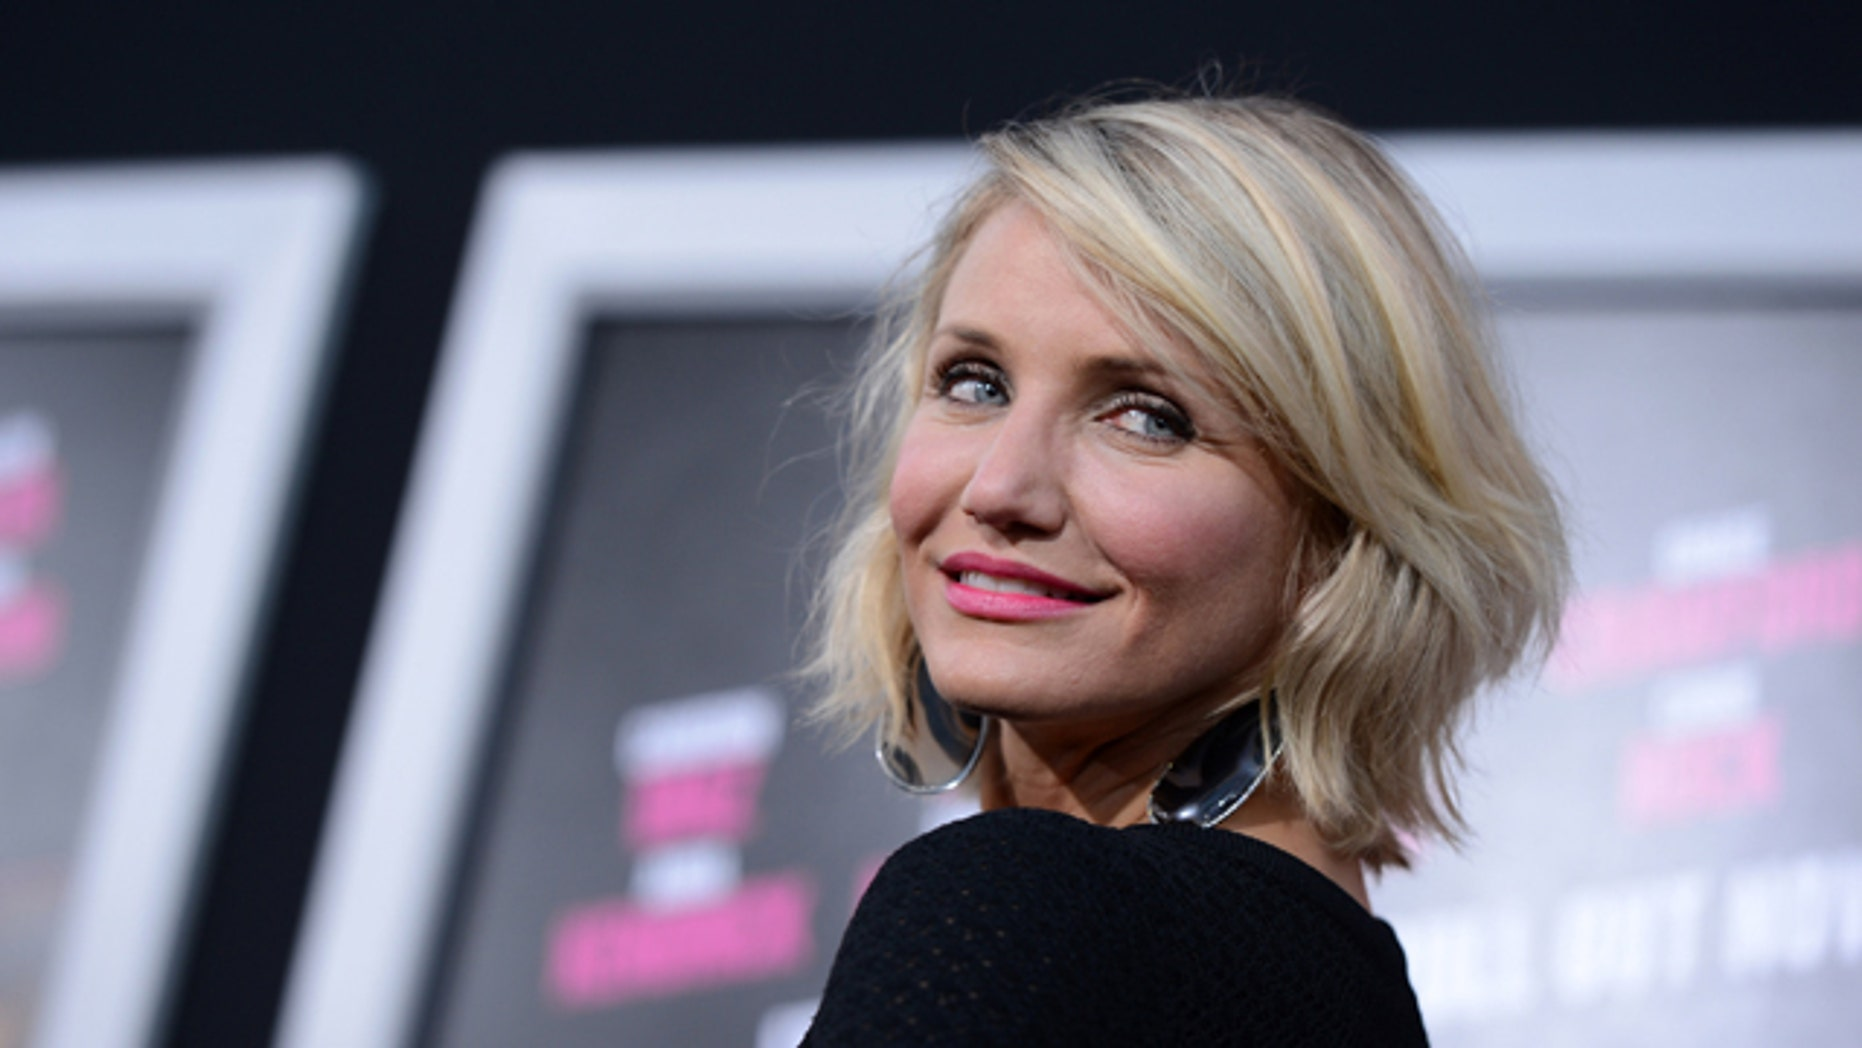 """HOLLYWOOD, CA - MAY 14:  Actress Cameron Diaz arrives at the premiere of Lionsgate's """"What To Expect When You're Expecting"""" held at Grauman's Chinese Theatre on May 14, 2012 in Hollywood, California.  (Photo by Kevin Winter/Getty Images)"""